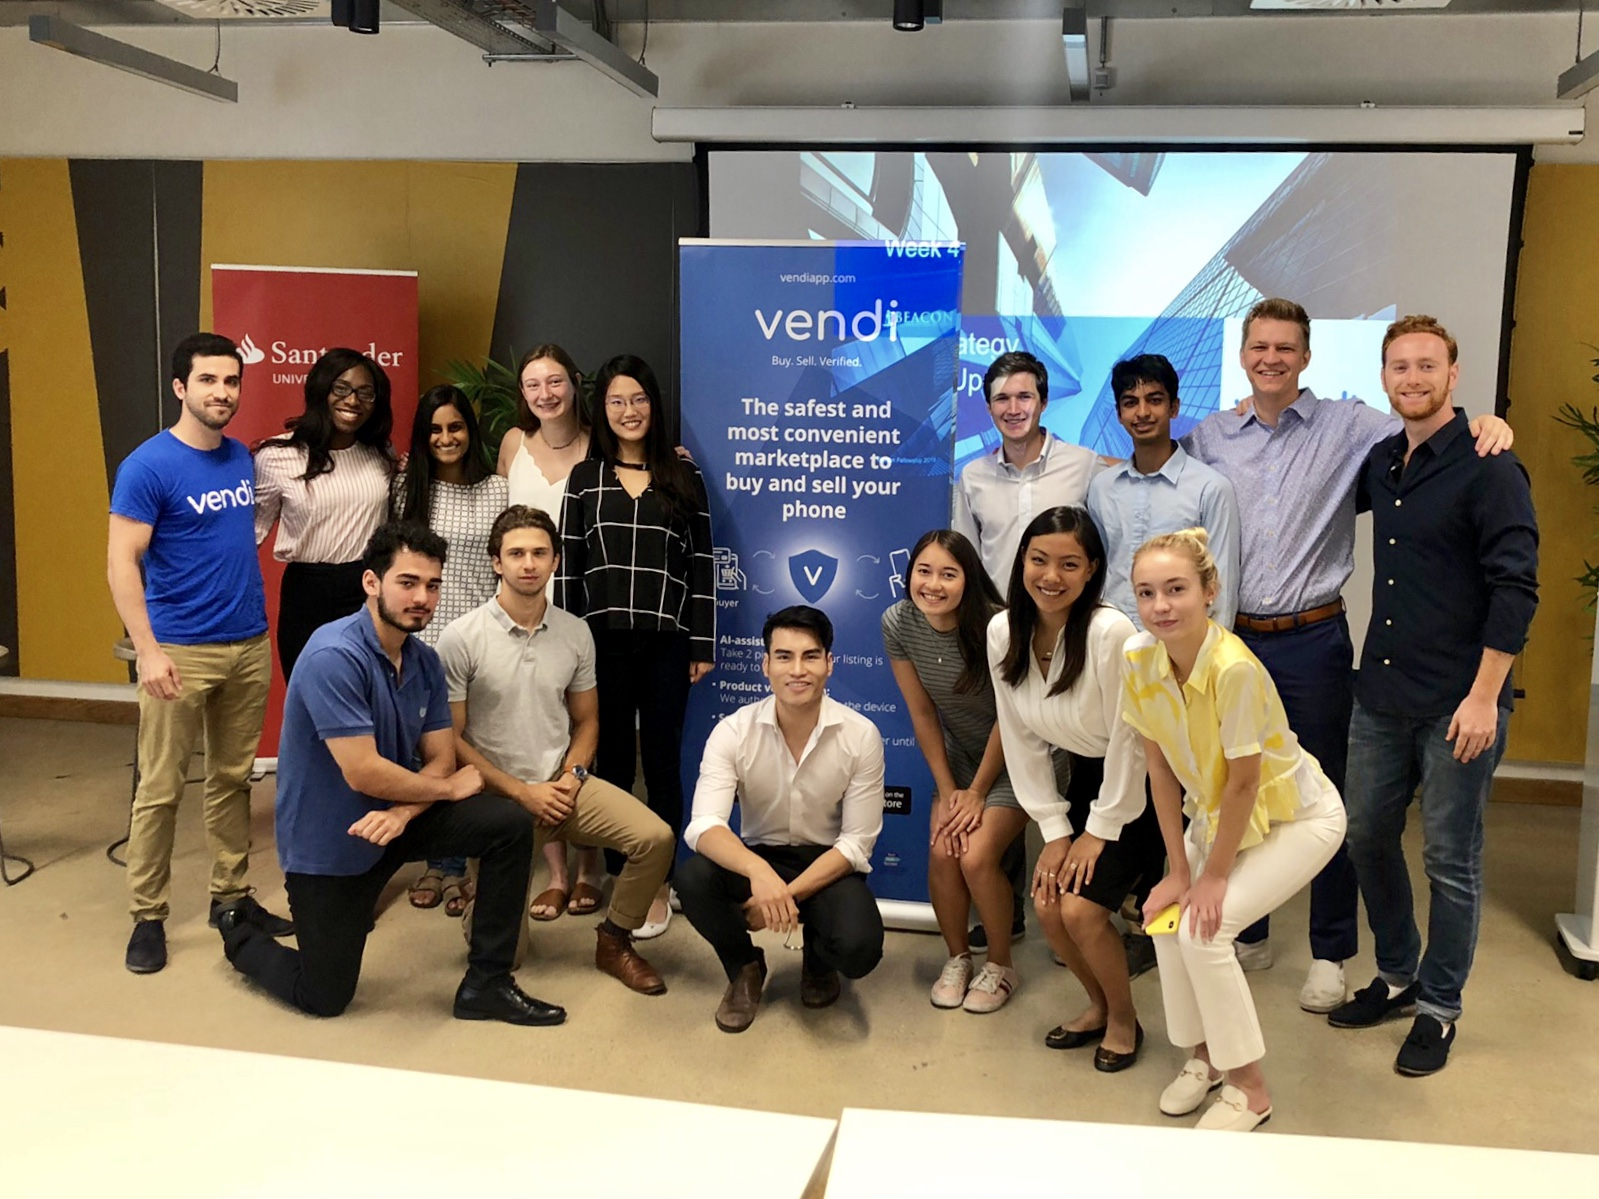 Summer 2019 Beacon Fellows at the Vendi client site in London.